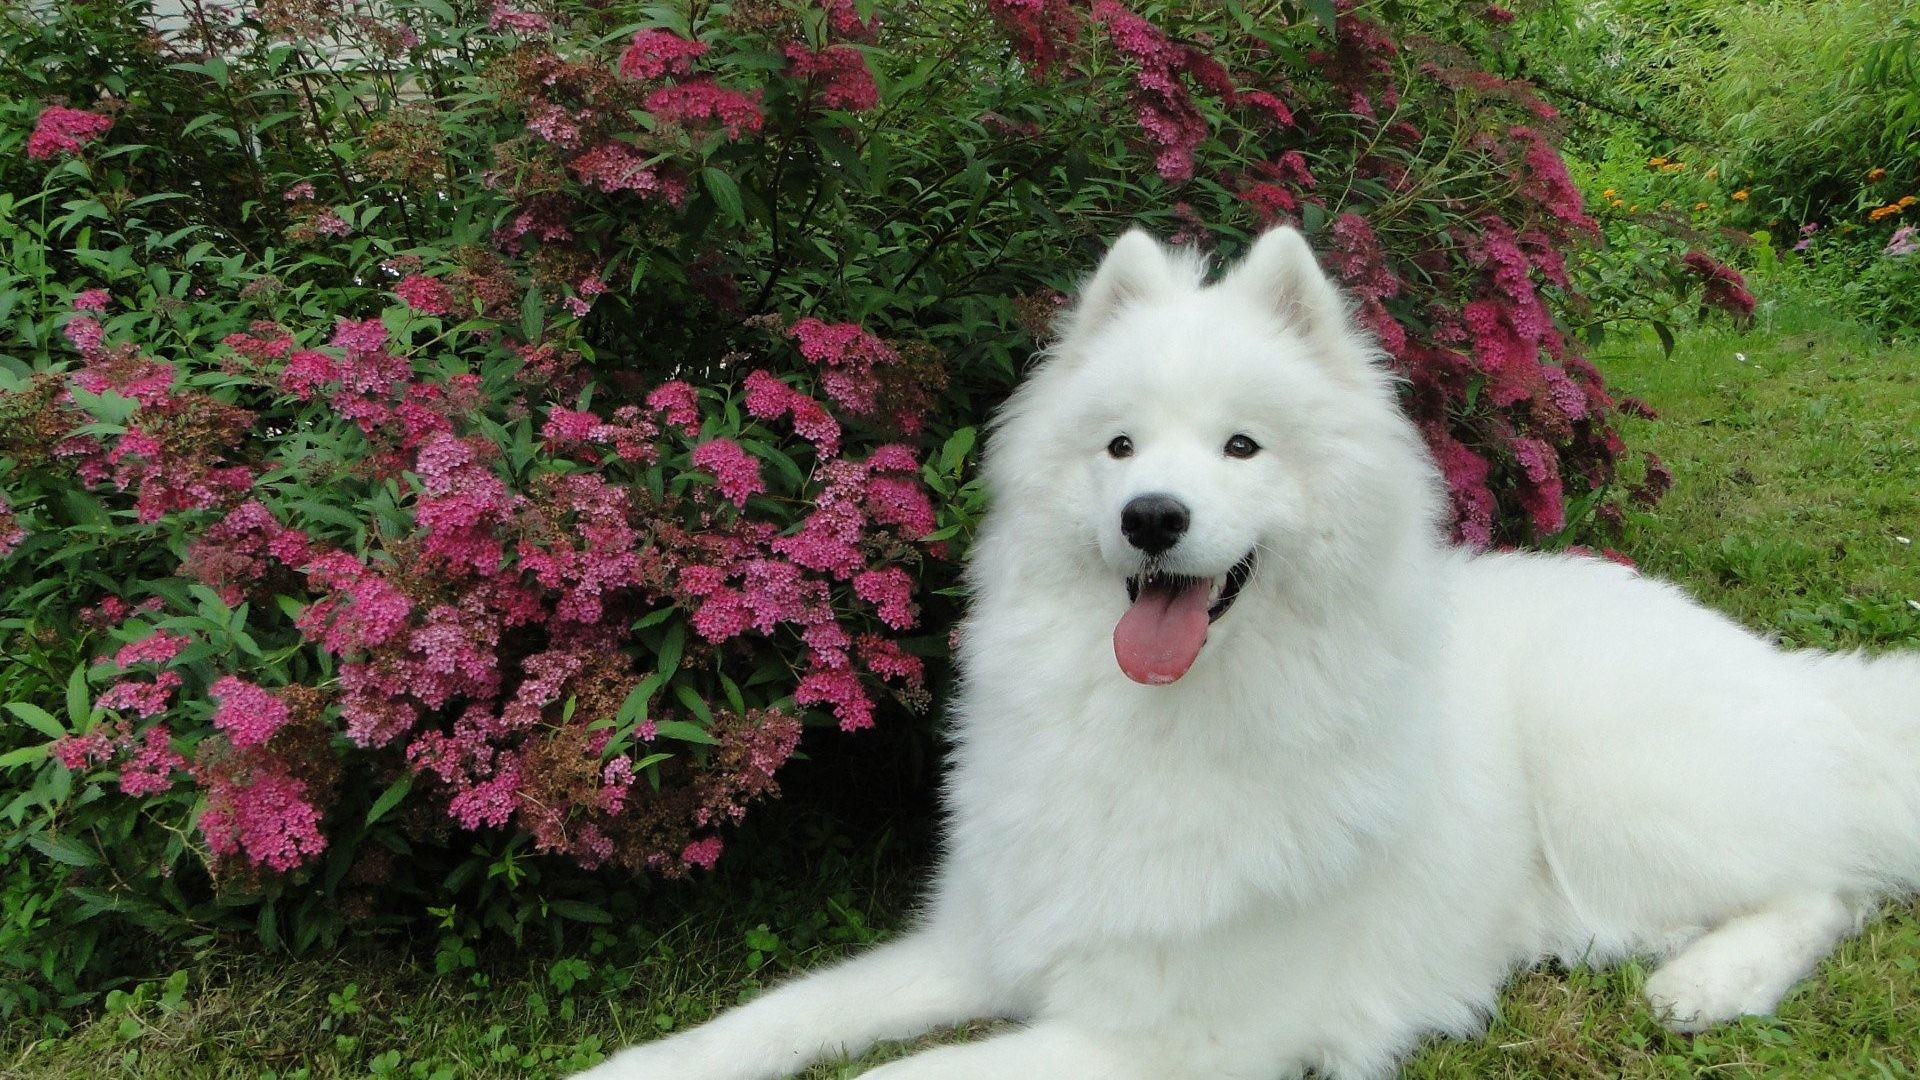 Samoyed Tag Aesthetic Samoyed 1920x1080 Wallpaper Teahub Io